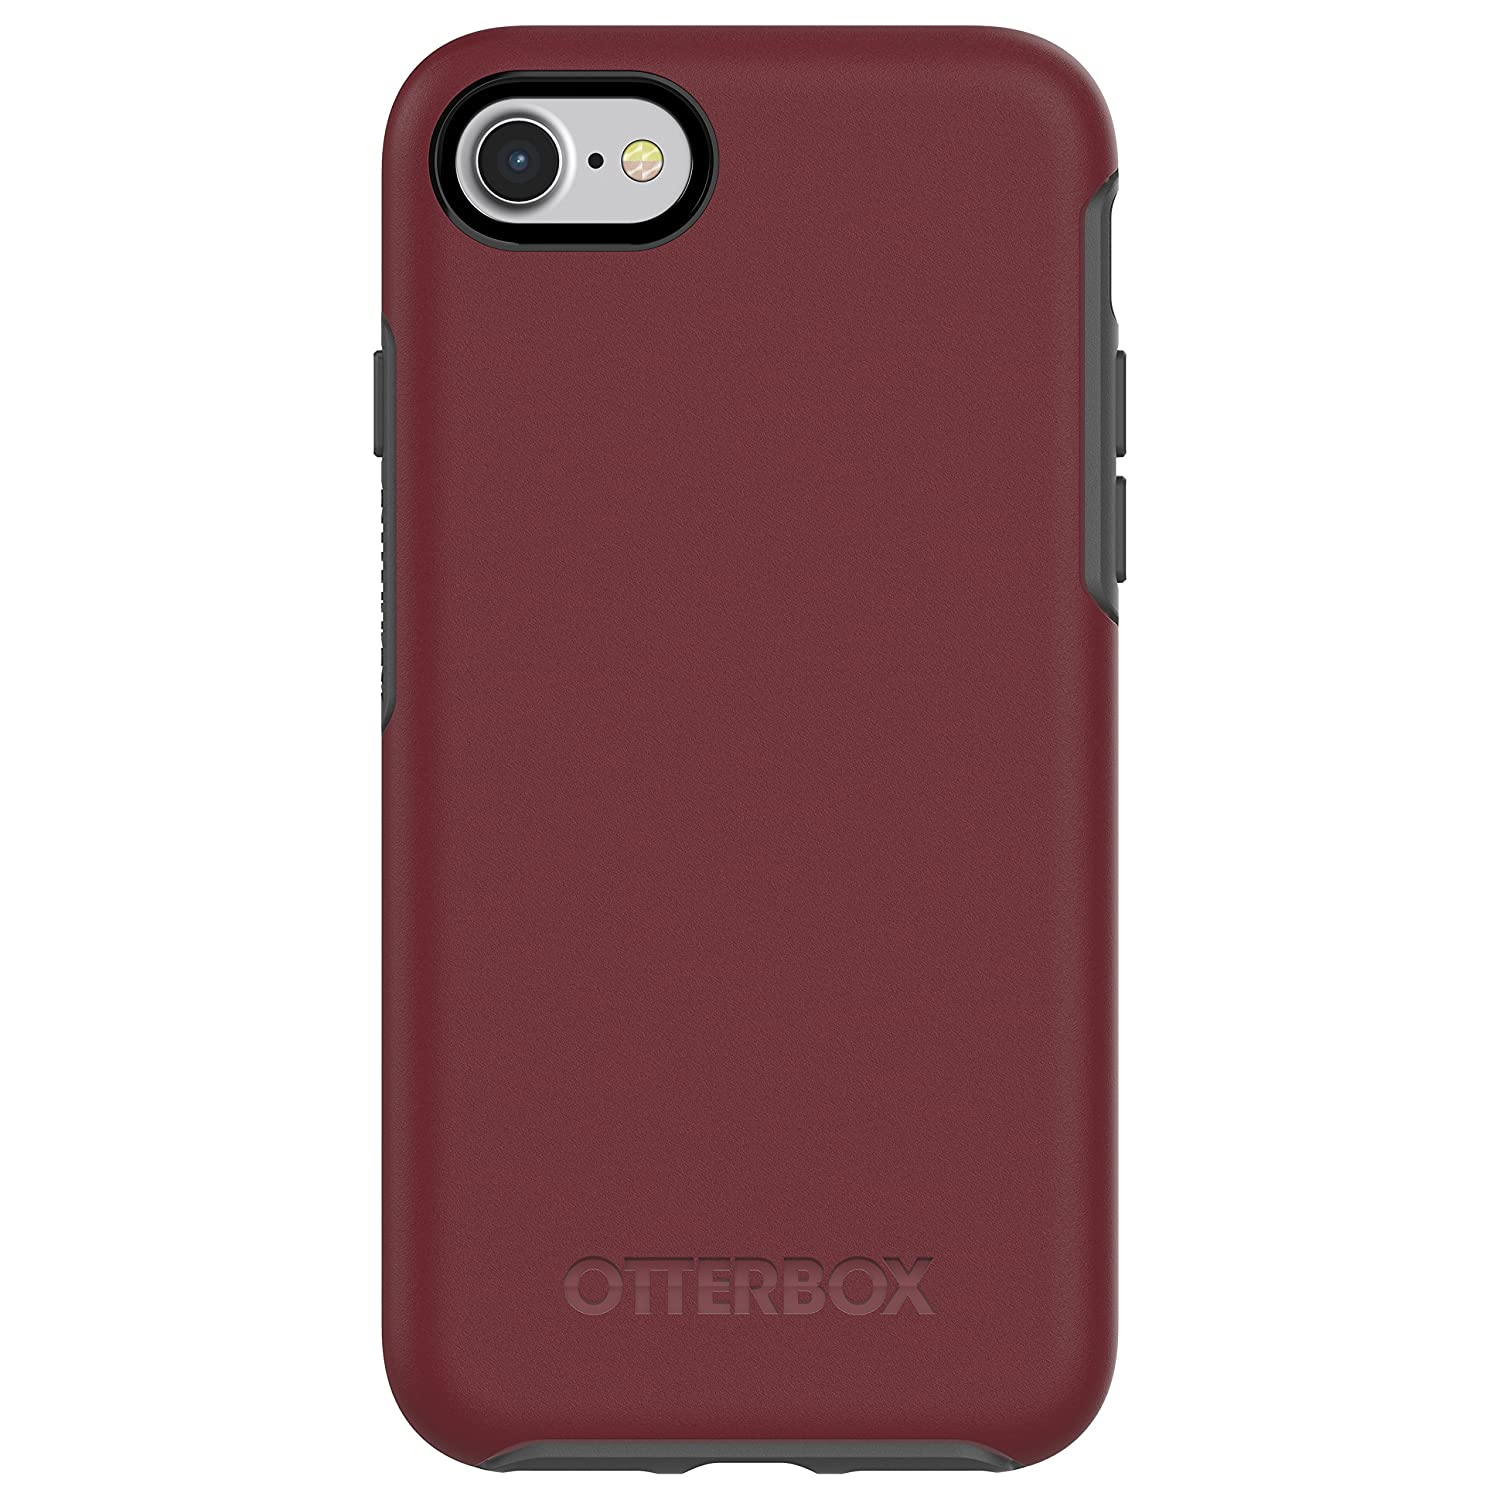 OtterBox SYMMETRY SERIES Case for iPhone 8 & iPhone 7 (NOT Plus) - Retail Packaging - FINE PORT (CORDOVAN/SLATE GREY)